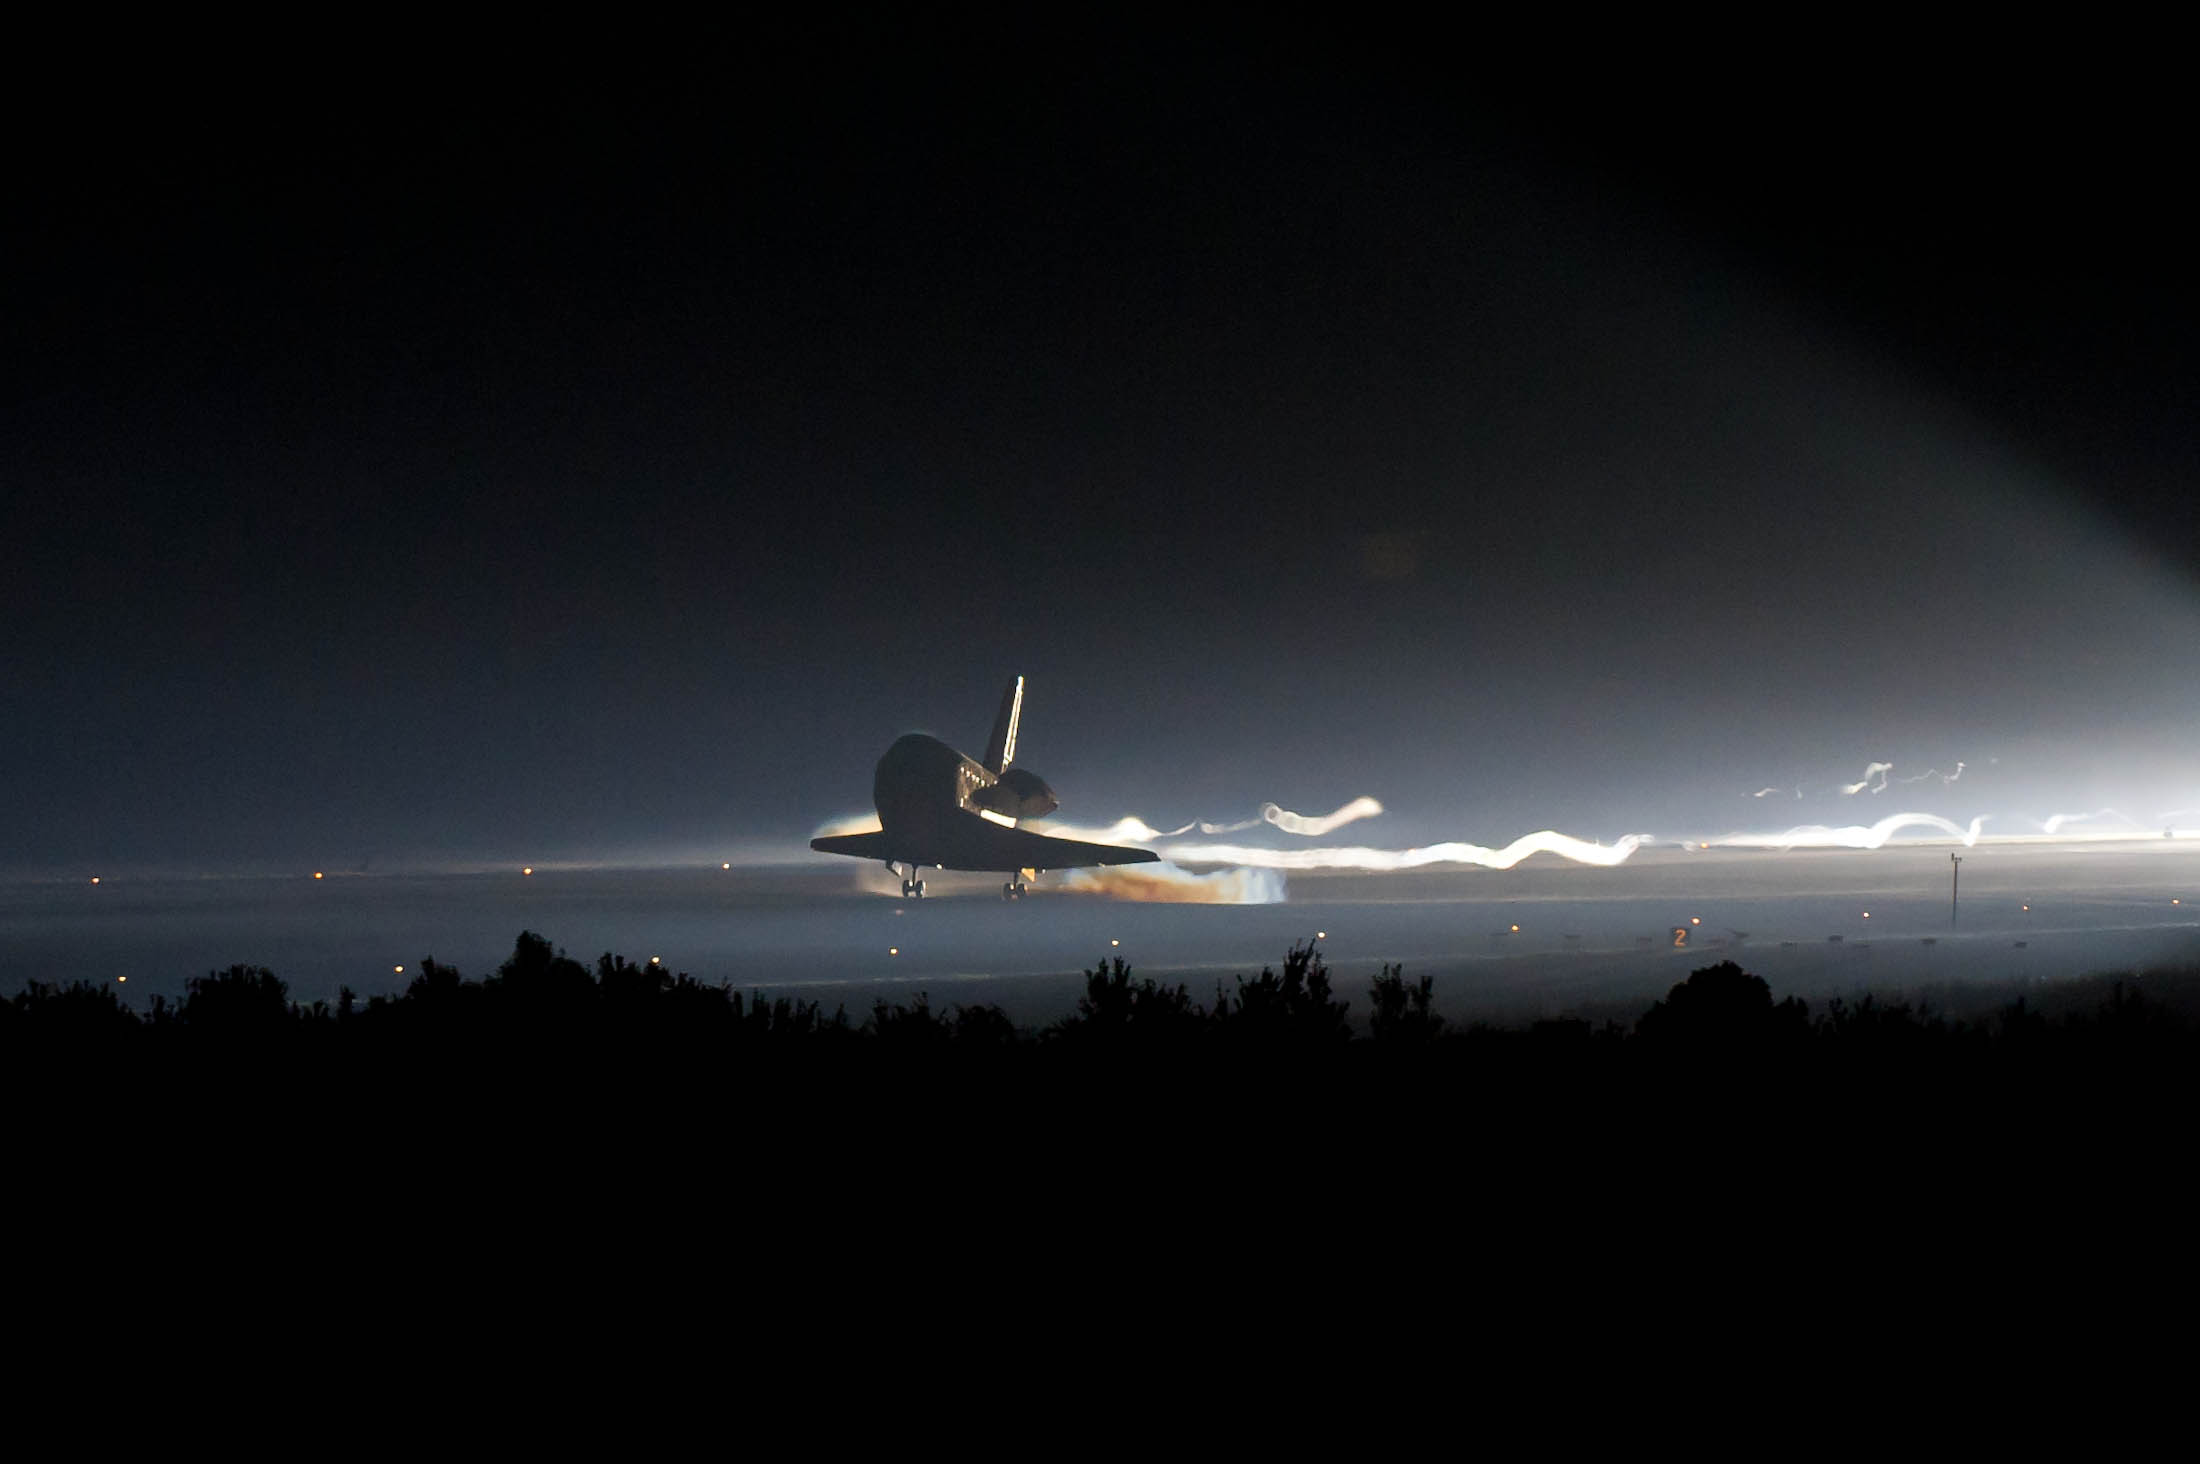 Shadow Landing for Final Space Shuttle Mission